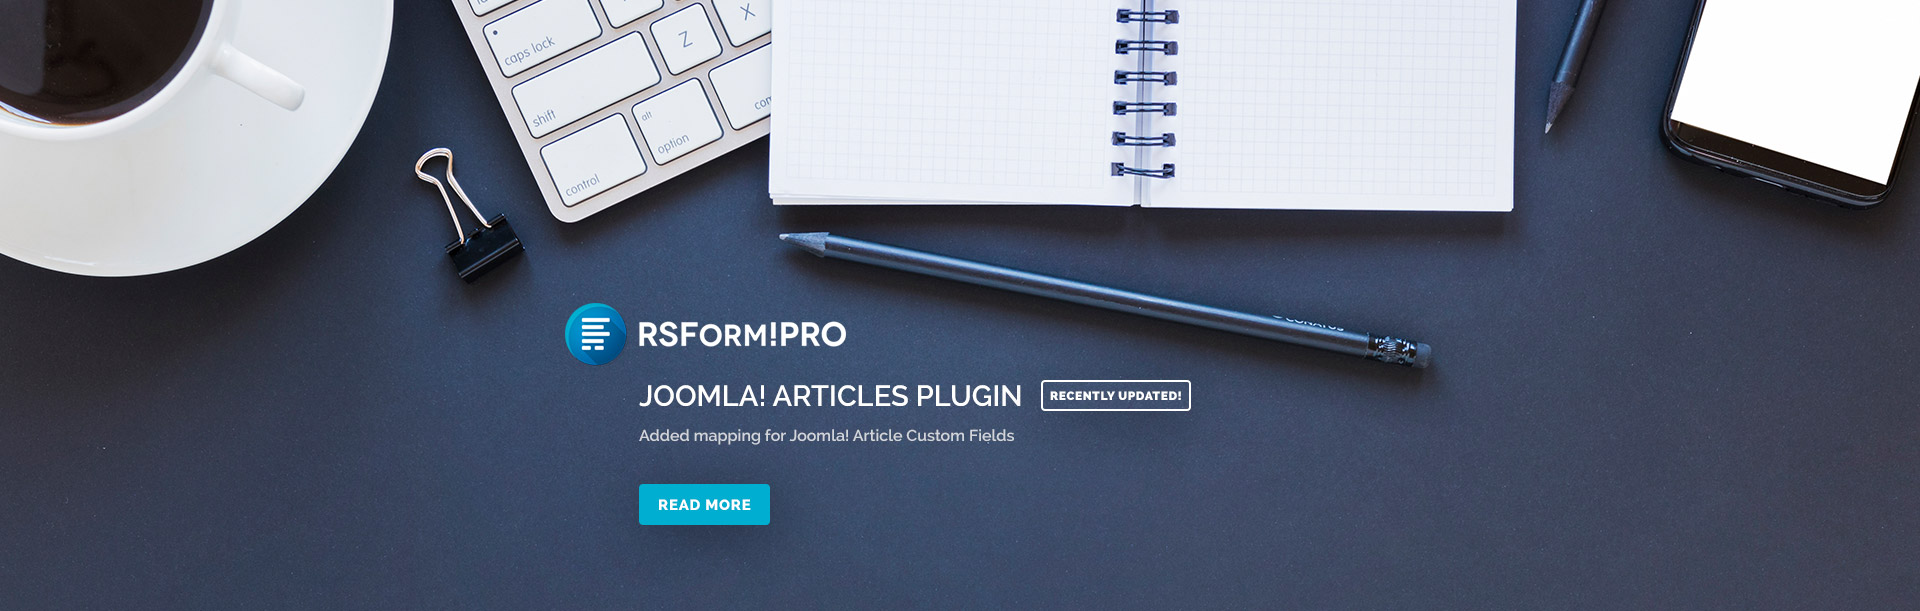 RSForm!Pro Joomla! Articles plugin